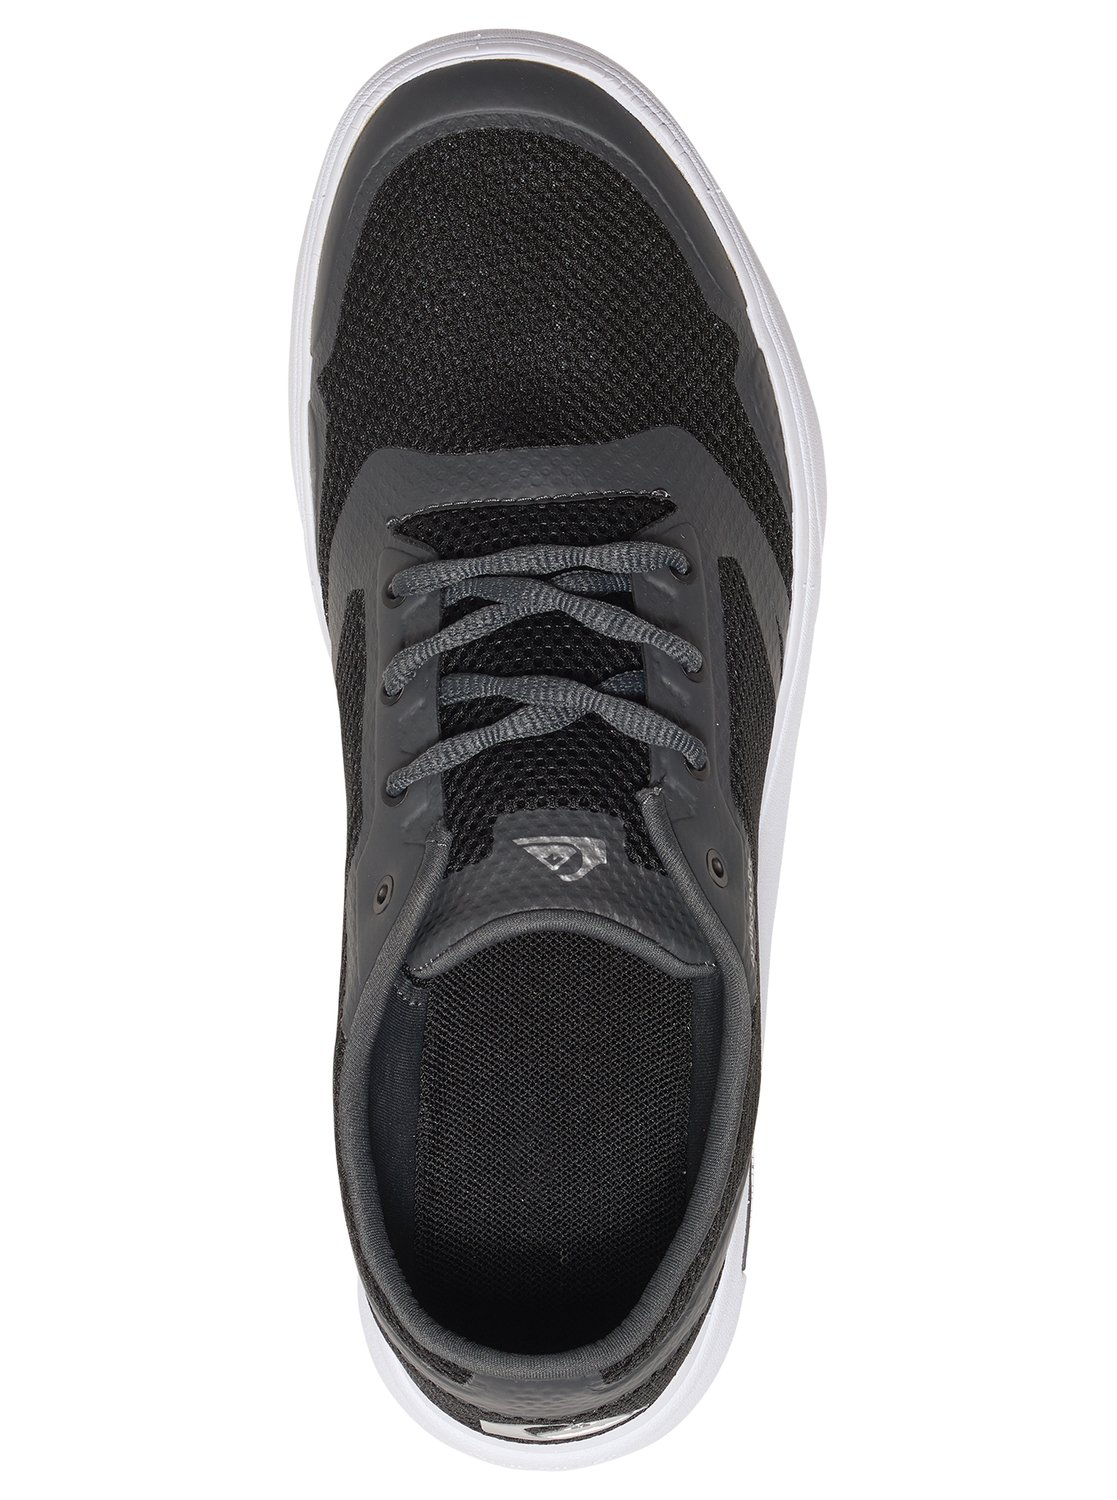 Water Footwear Quiksilver Mens Amphibian Plus Water Shoe